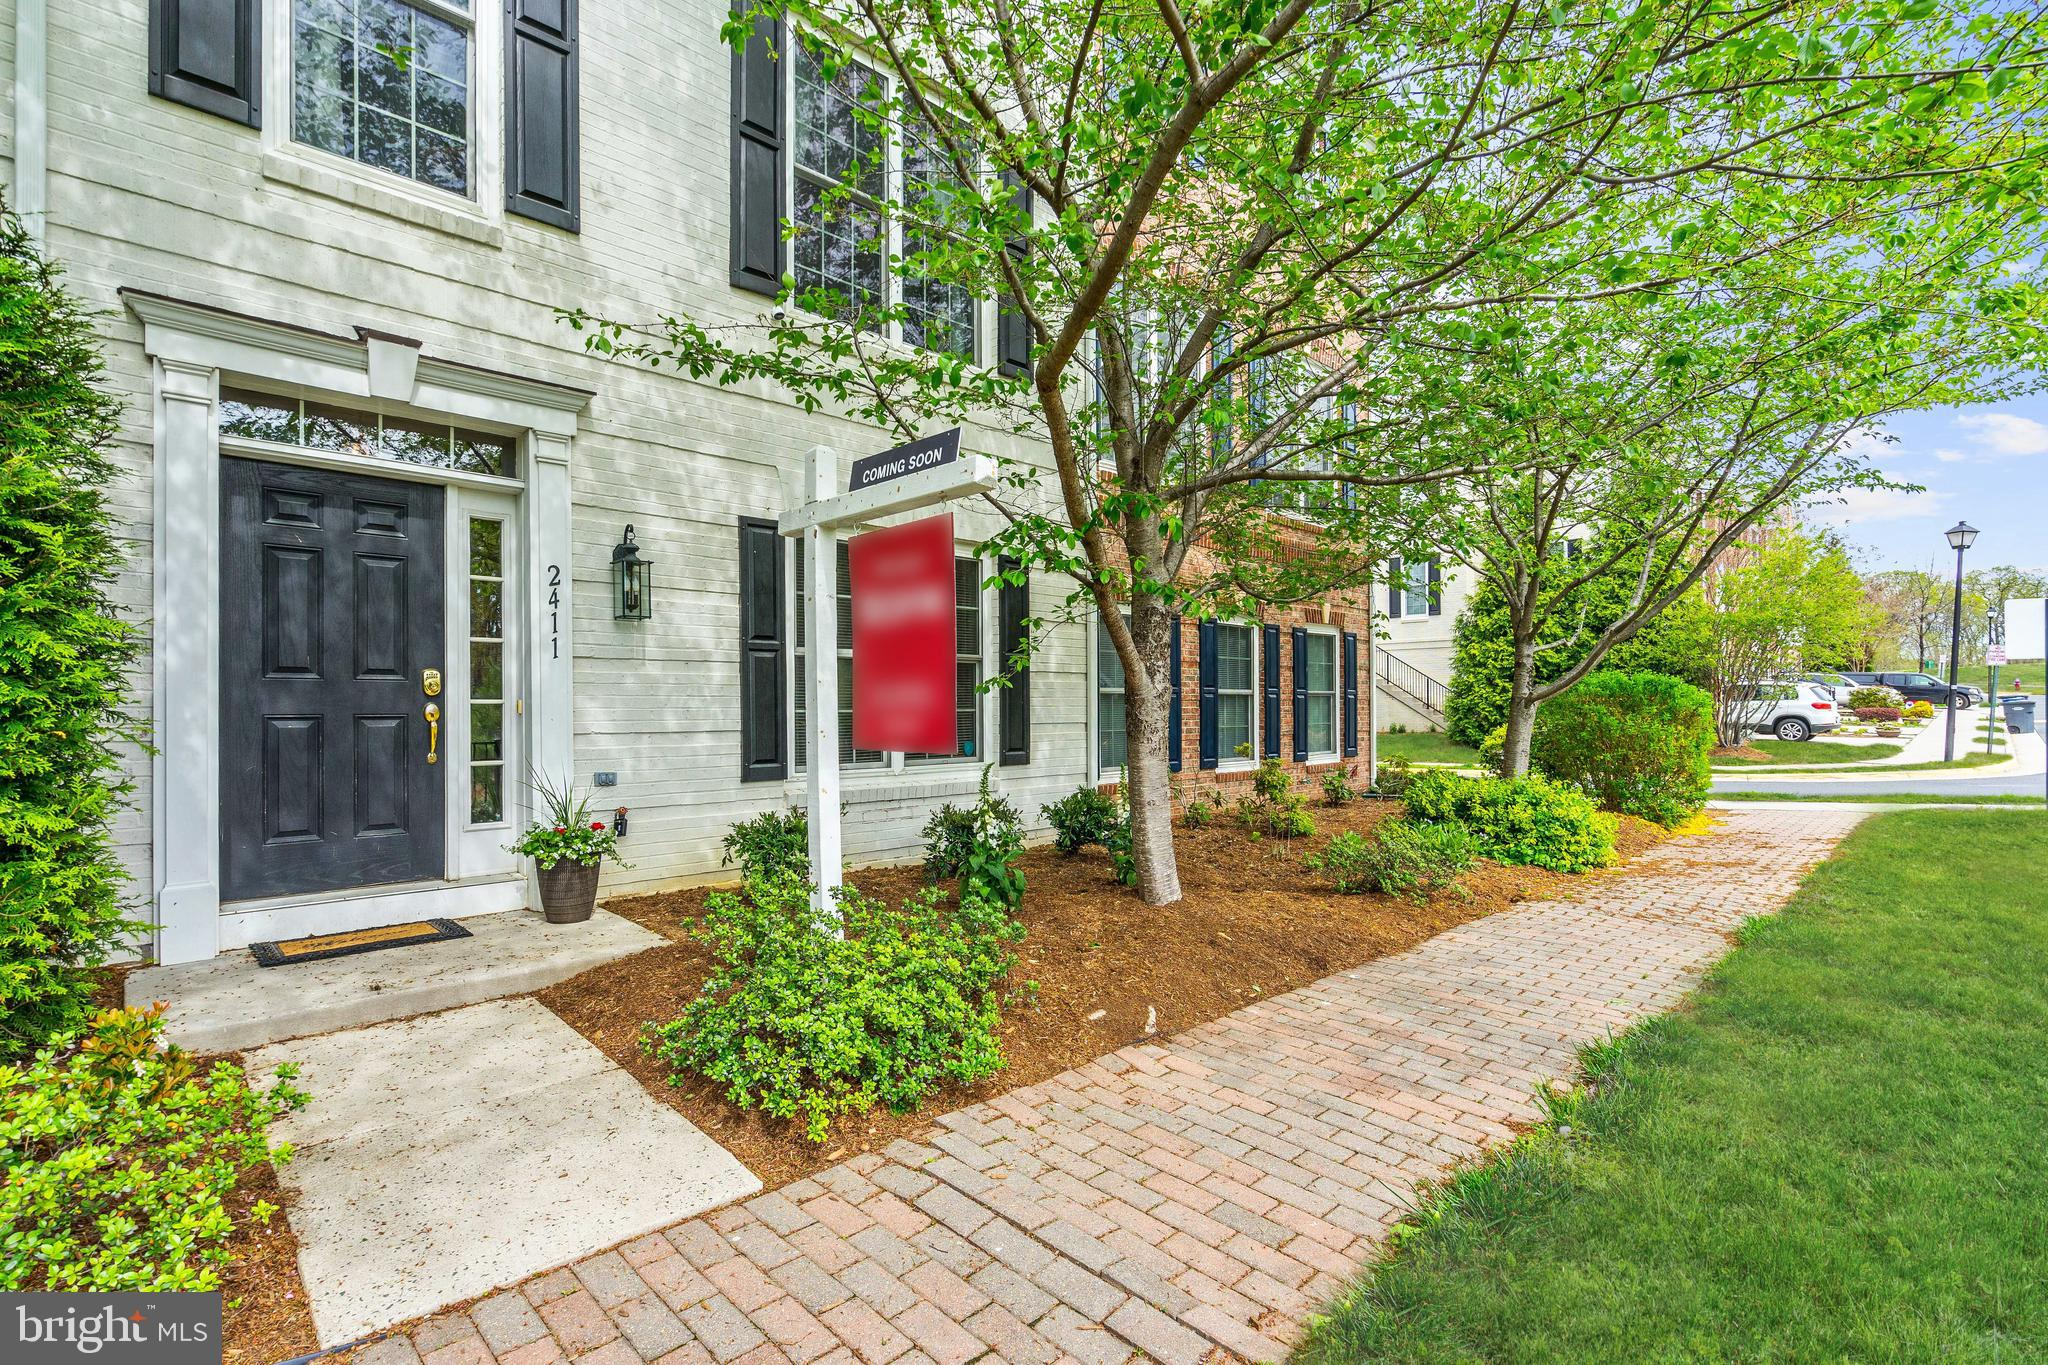 Welcome to the PAVILIONS AT HUNTINGTON. This 3 level, 4 bedrooms 3.5 baths 1842 sq. ft. the townhouse is very nicely appointed and has an oversized 2 car garage! A short distance to Huntington Metro or Minutes to I-95/395/495. Hardwoods on main! Kitchen has granite, stainless appliances (gas range) and cherry cabinets! Master suite features tray ceiling, soaking tub, double vanity, and separate shower stall! Fireplace that joins dining and living space!